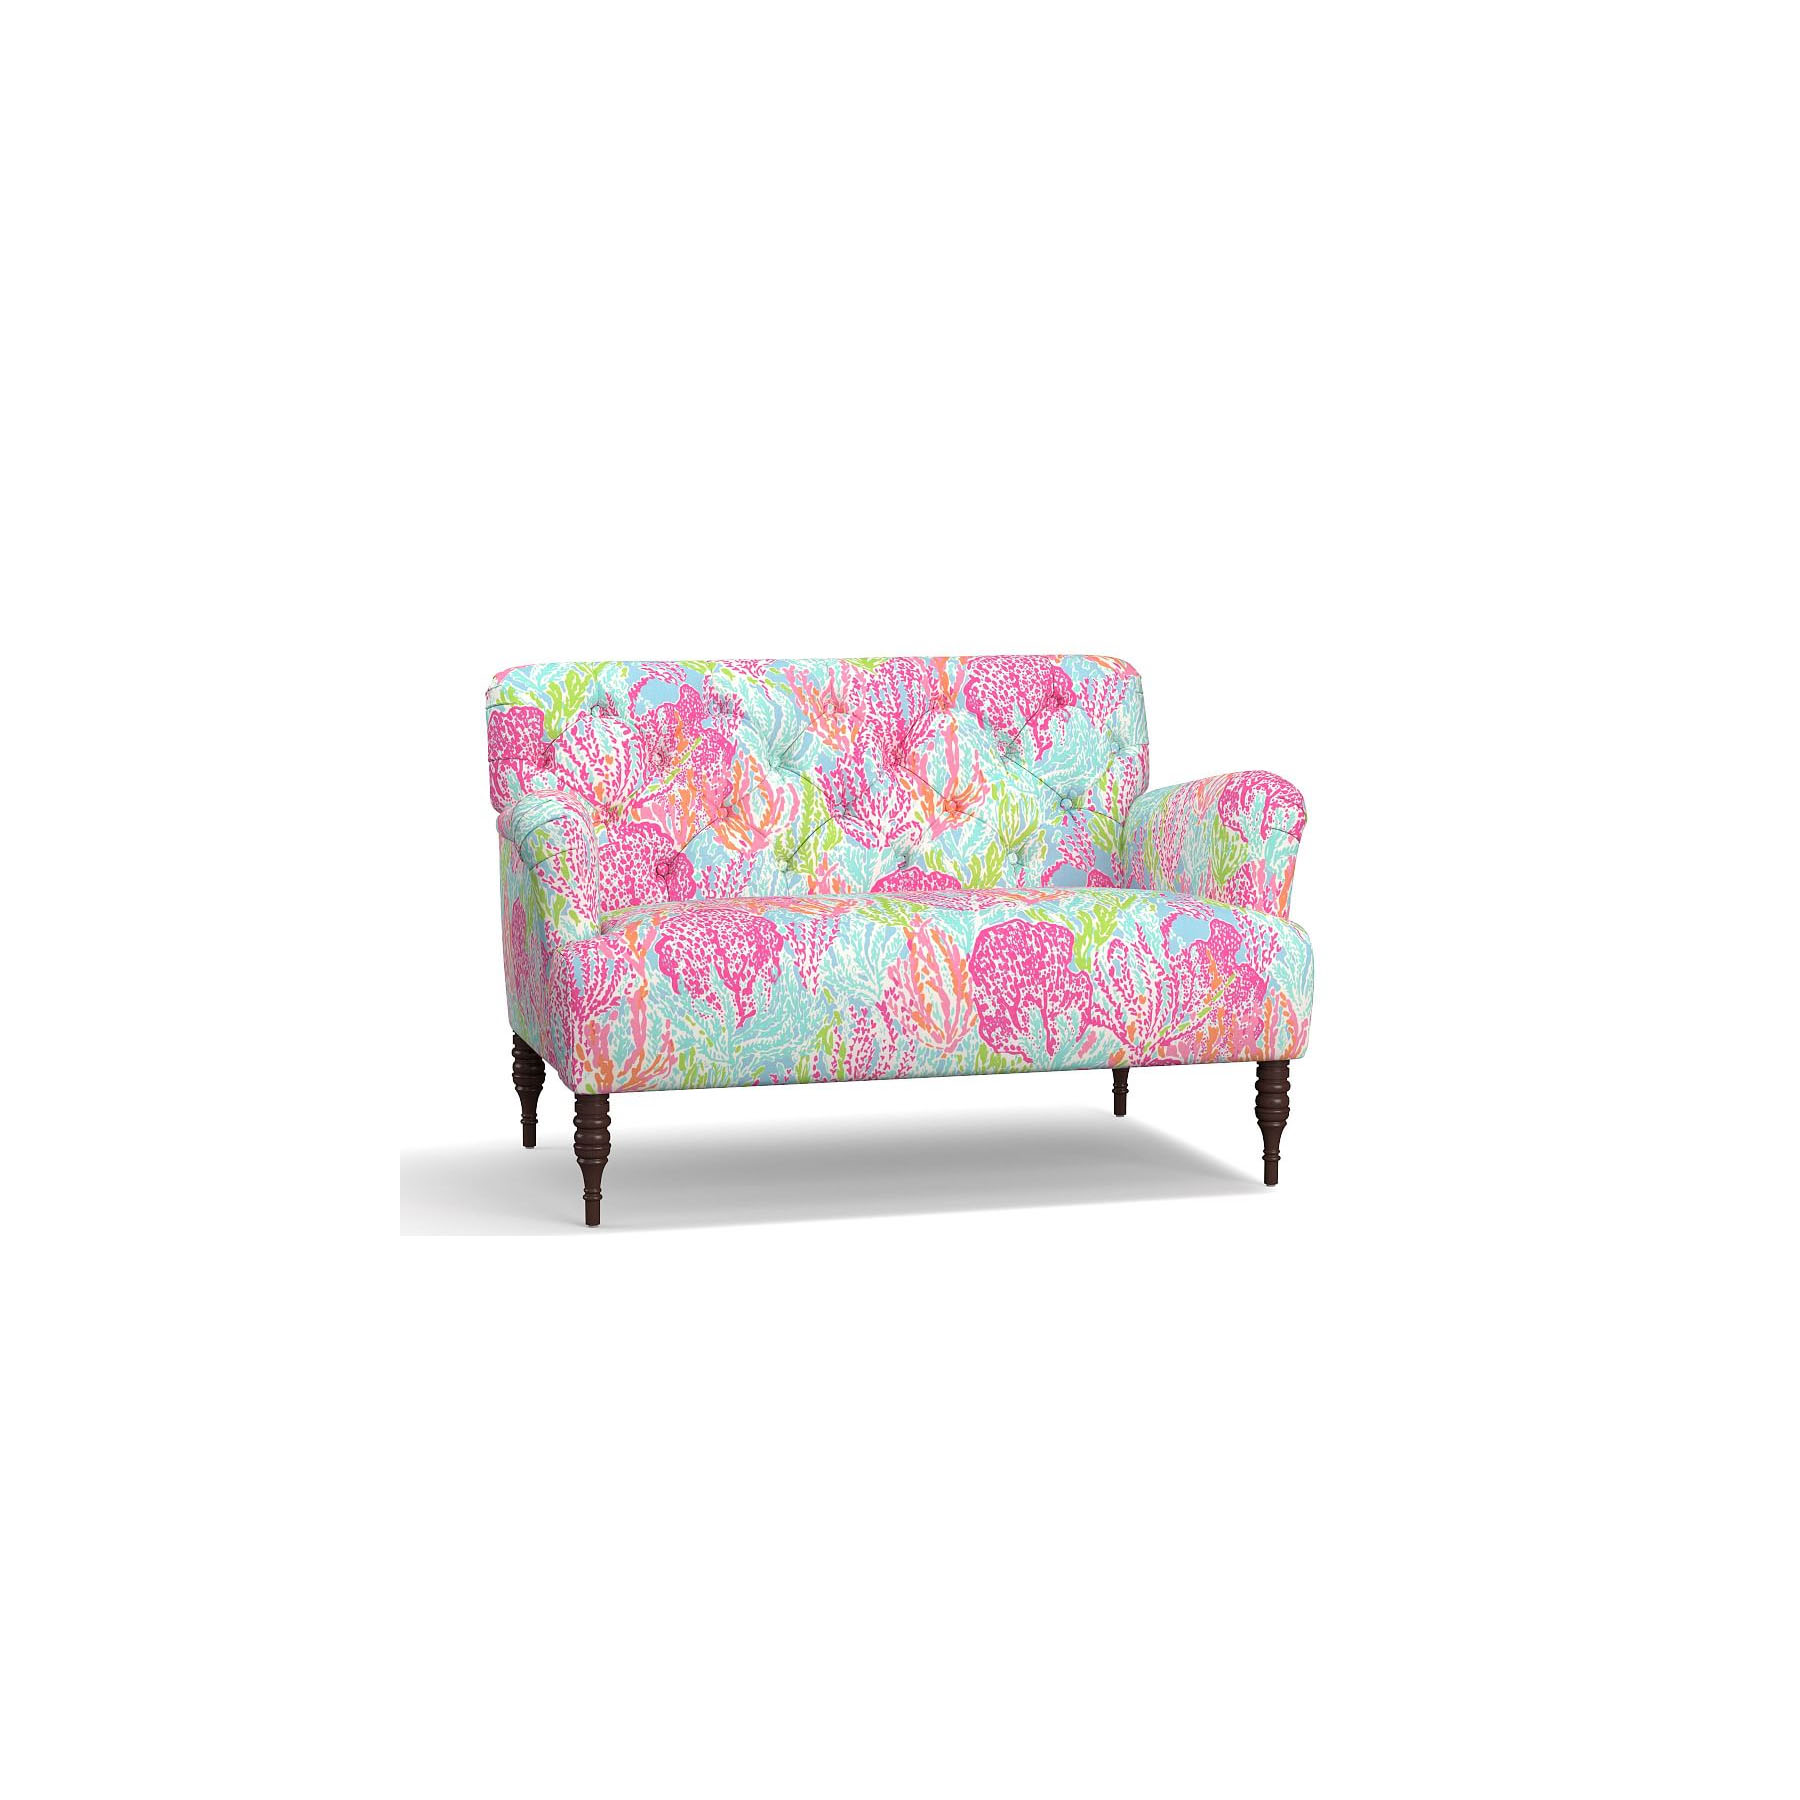 lilly-pulitzer-pottery-barn-madison-settee